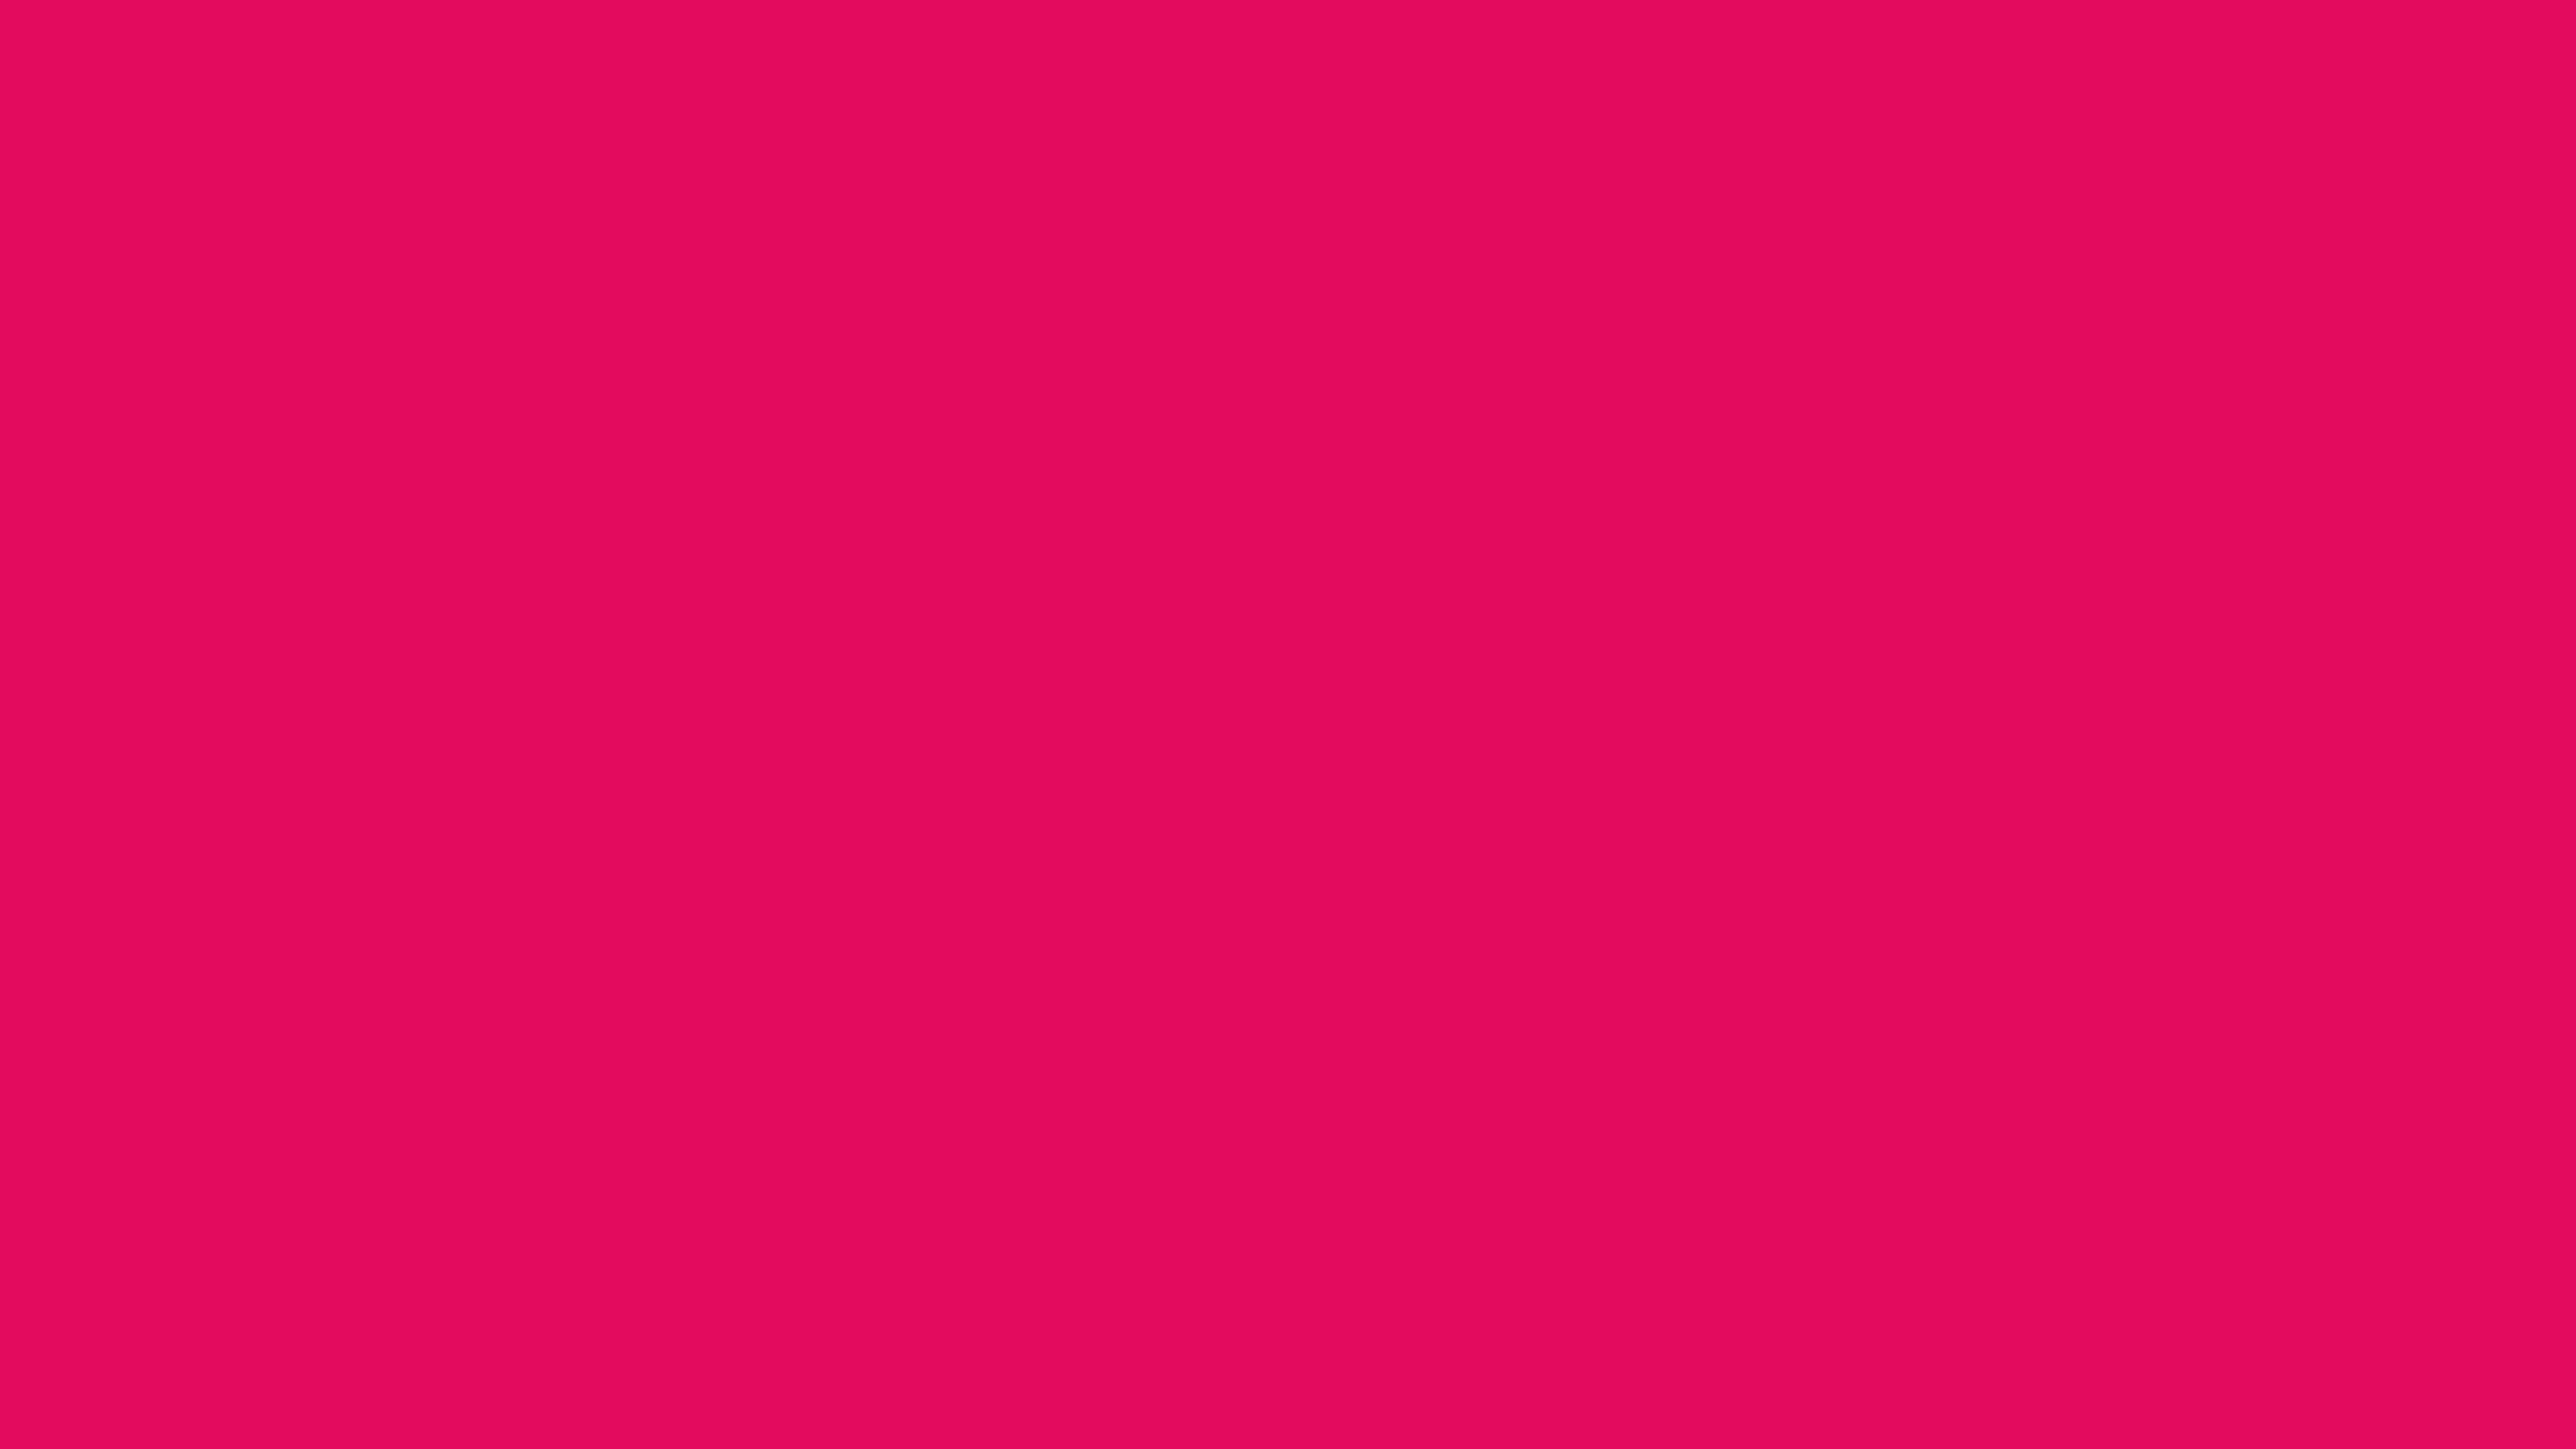 3840x2160 Raspberry Solid Color Background